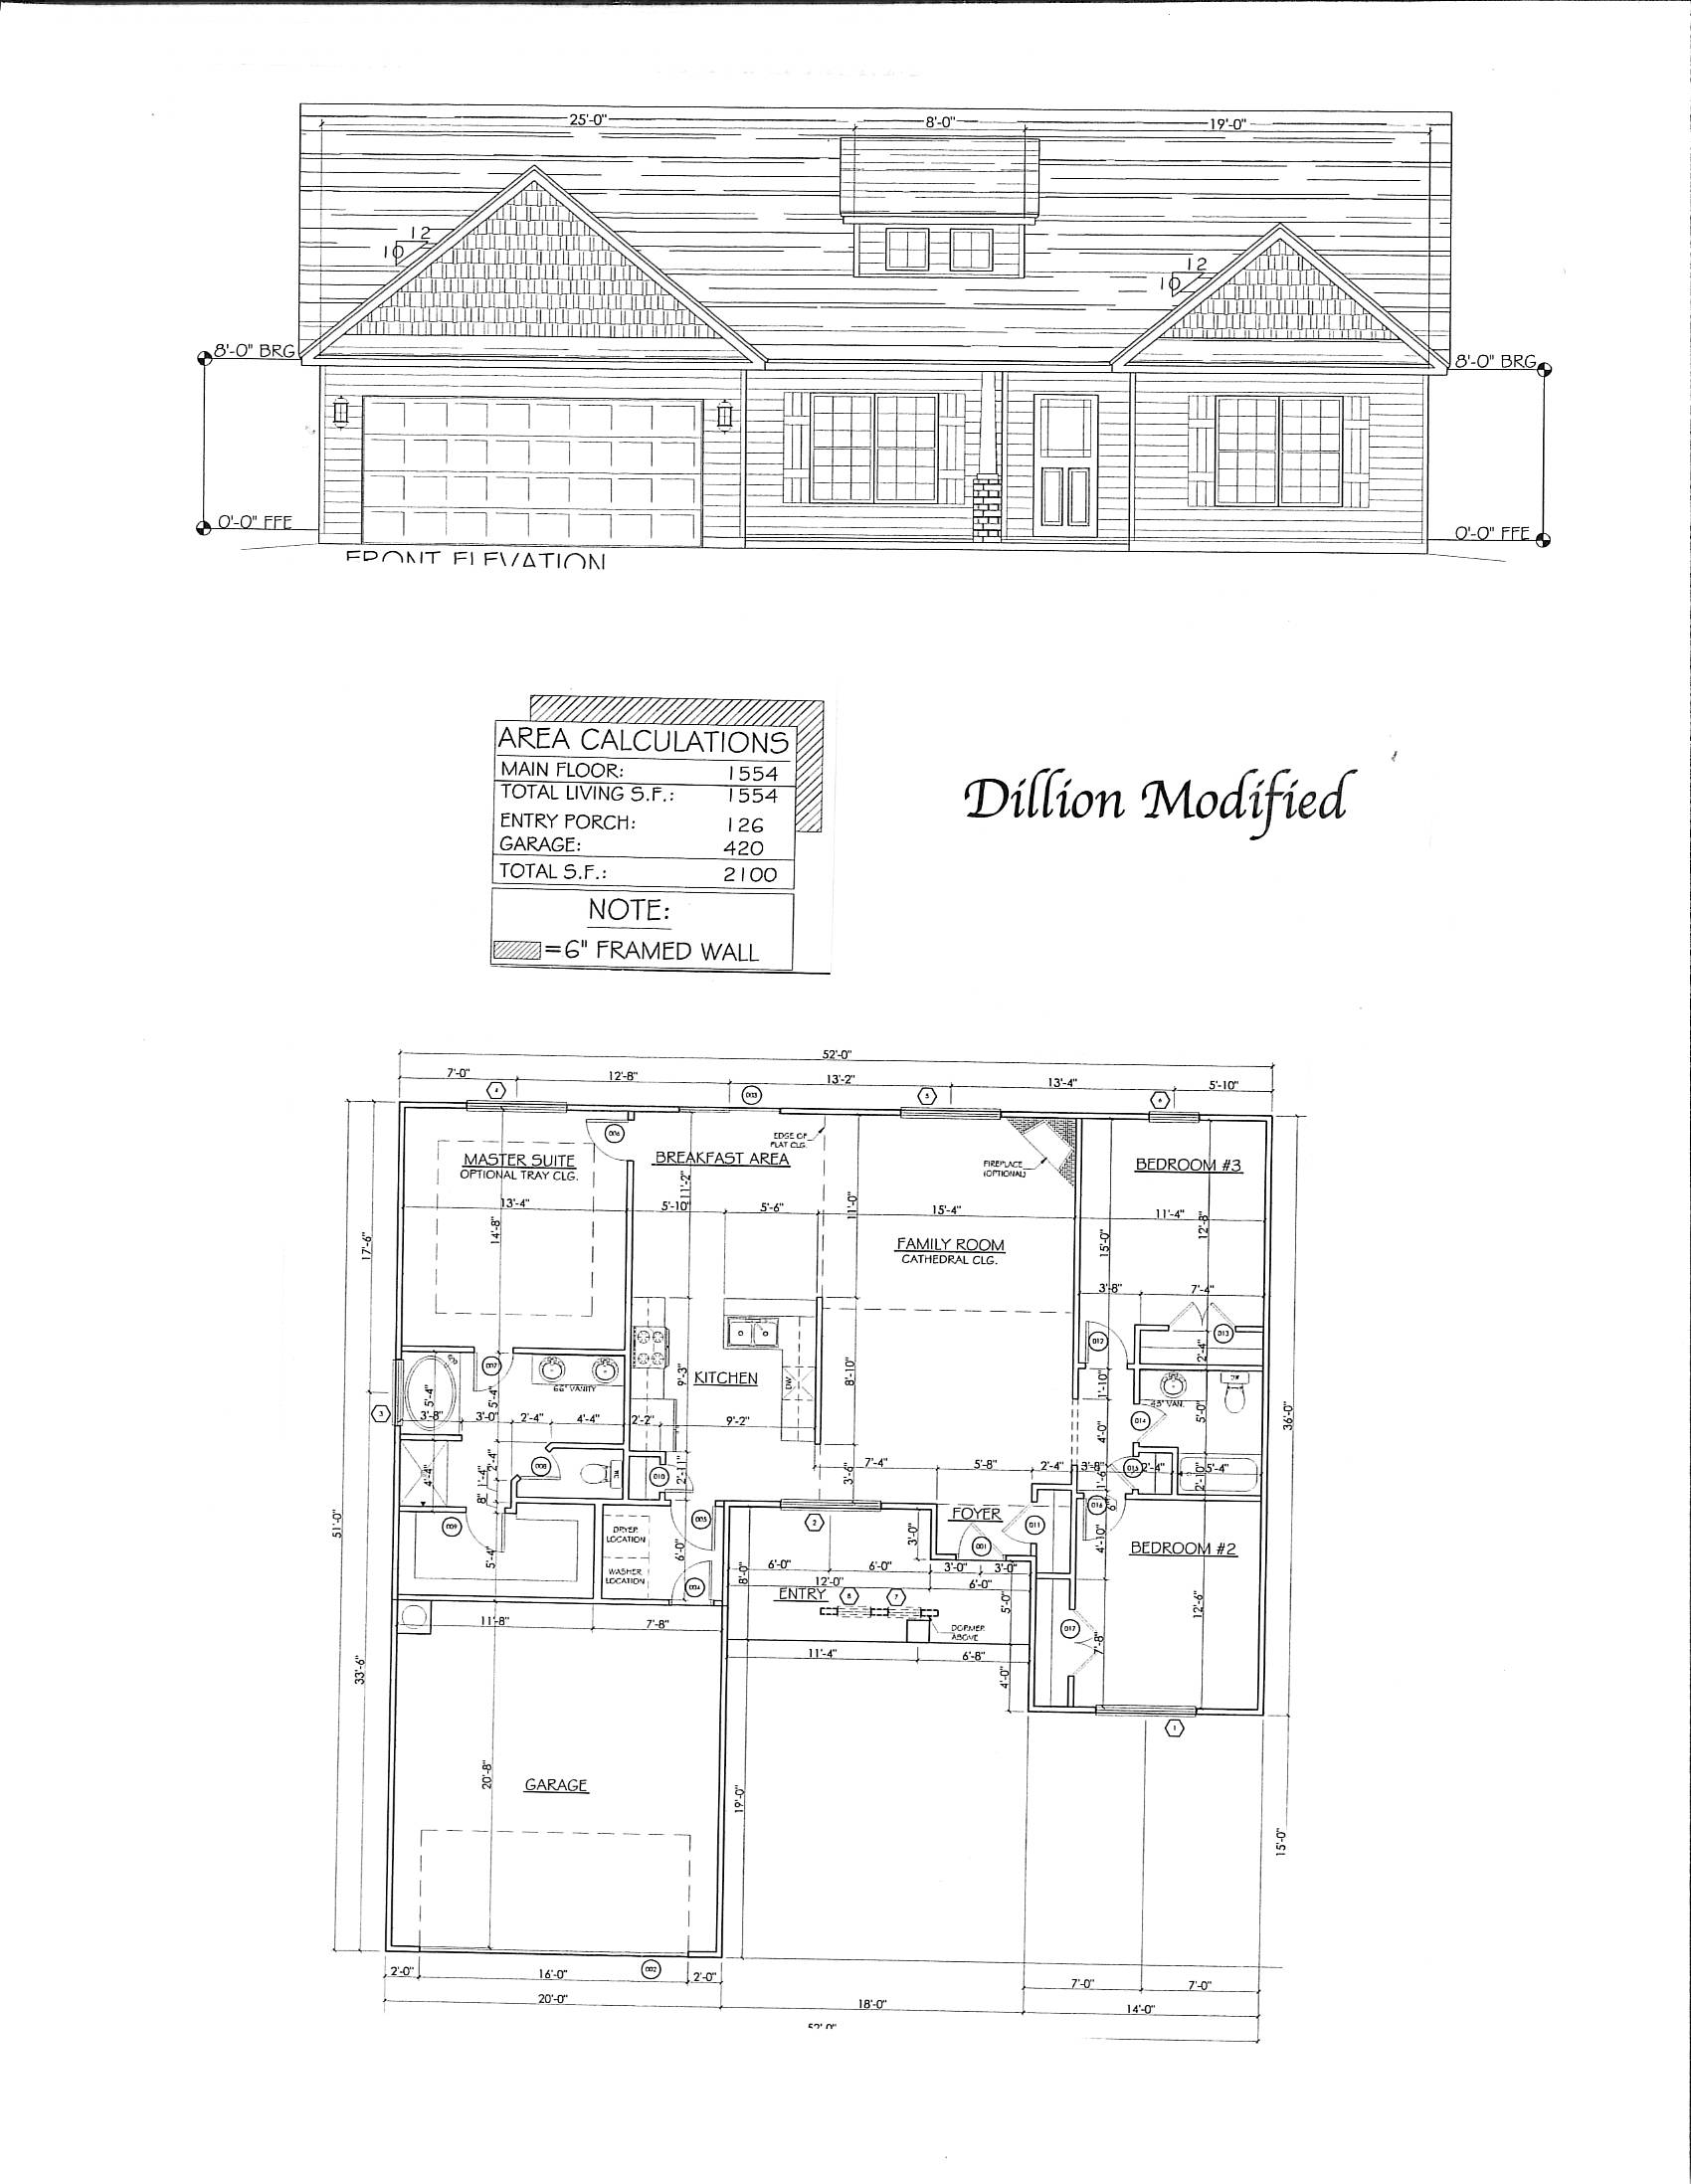 dillion modified floorplan